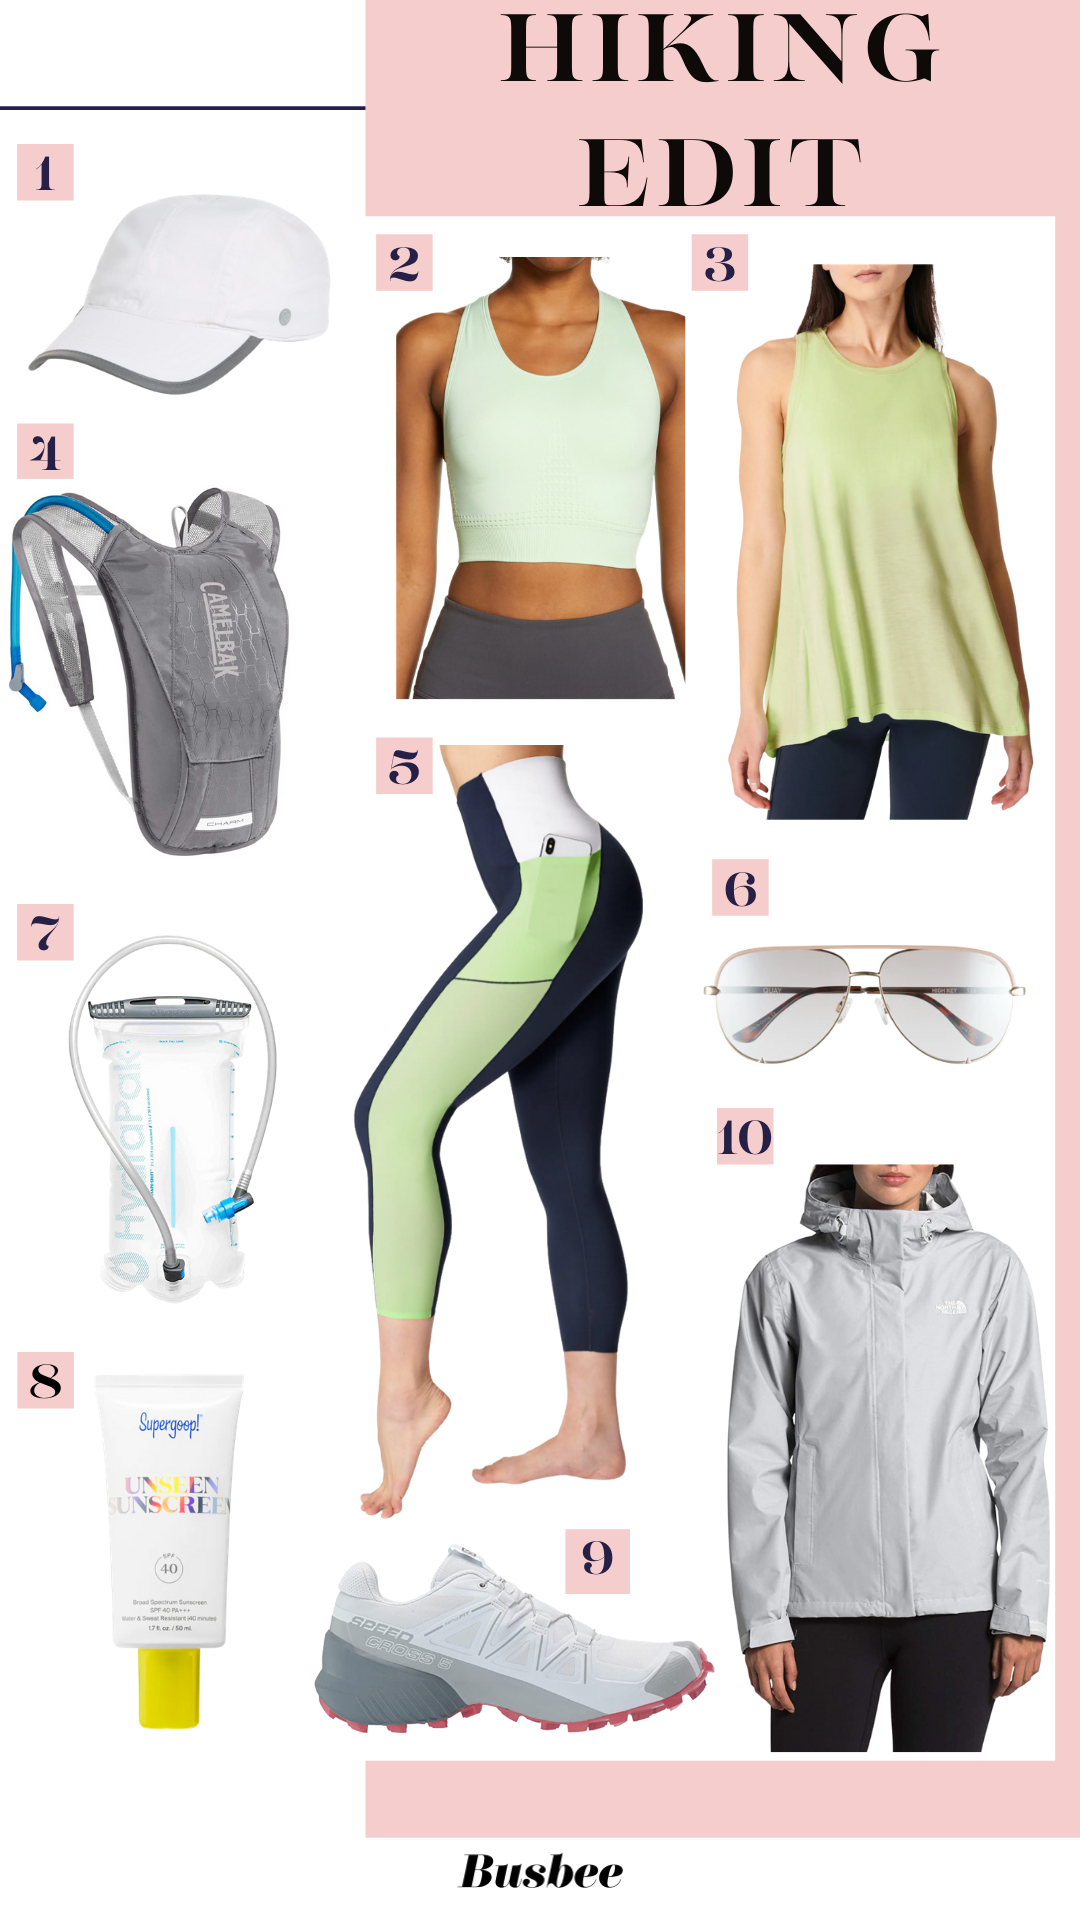 hiking essentials, what to wear hiking, how to dress hiking, womens hiking outfits, salomon hiking shoes, best hiking shoes women, what to wear on a hike, hiking look, hiking outfit, best hiking outfit, hiking must-haves